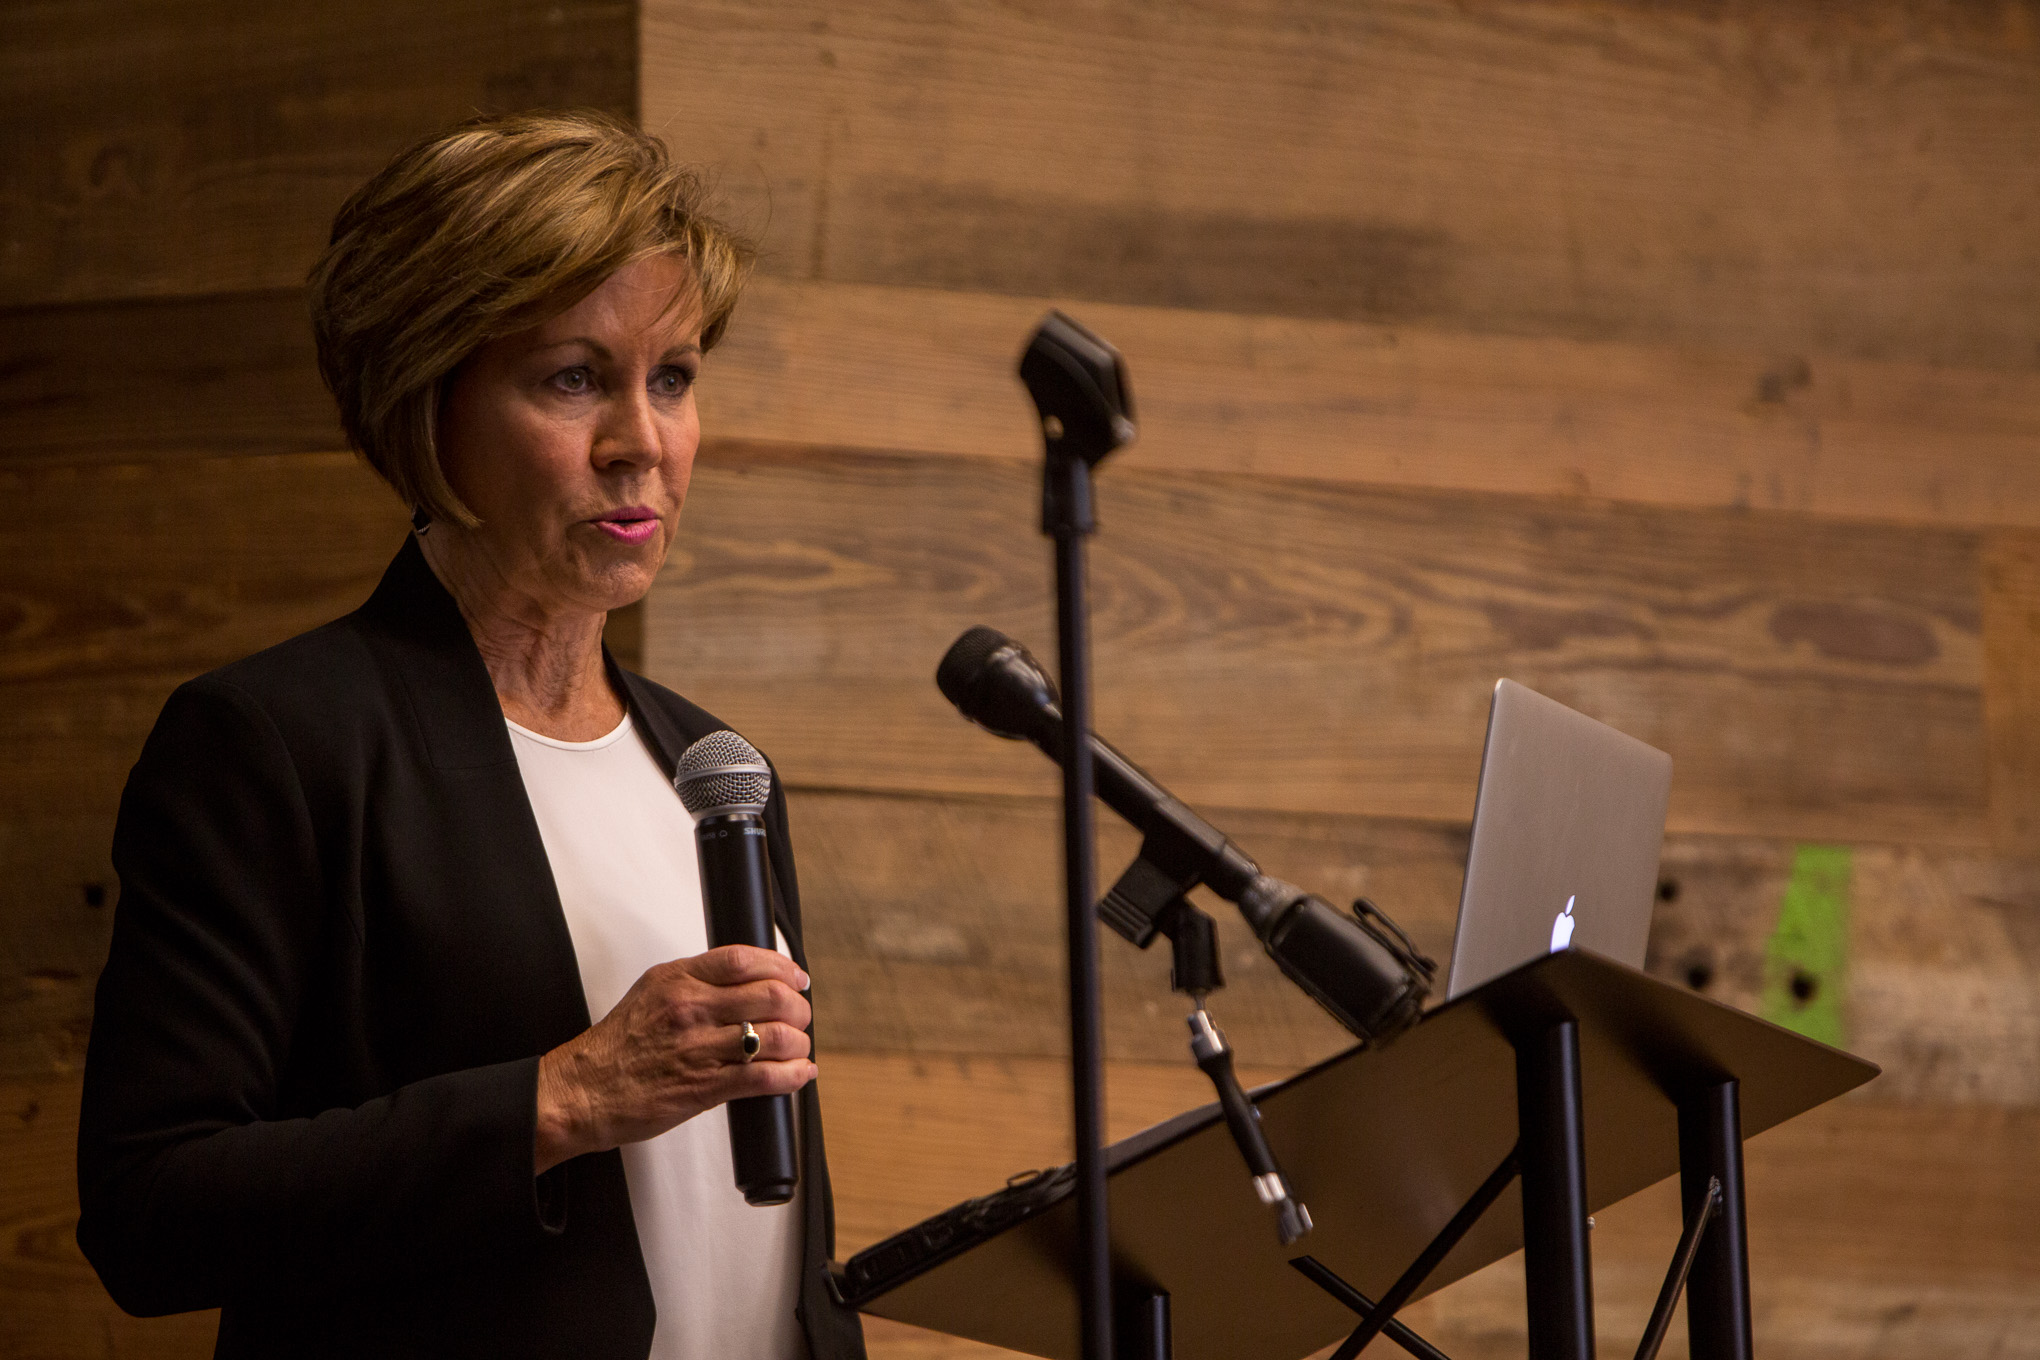 San Antonio City Manager Sheryl Sculley addresses the tech community at the Geekdom Event Center. Photo by Scott Ball.